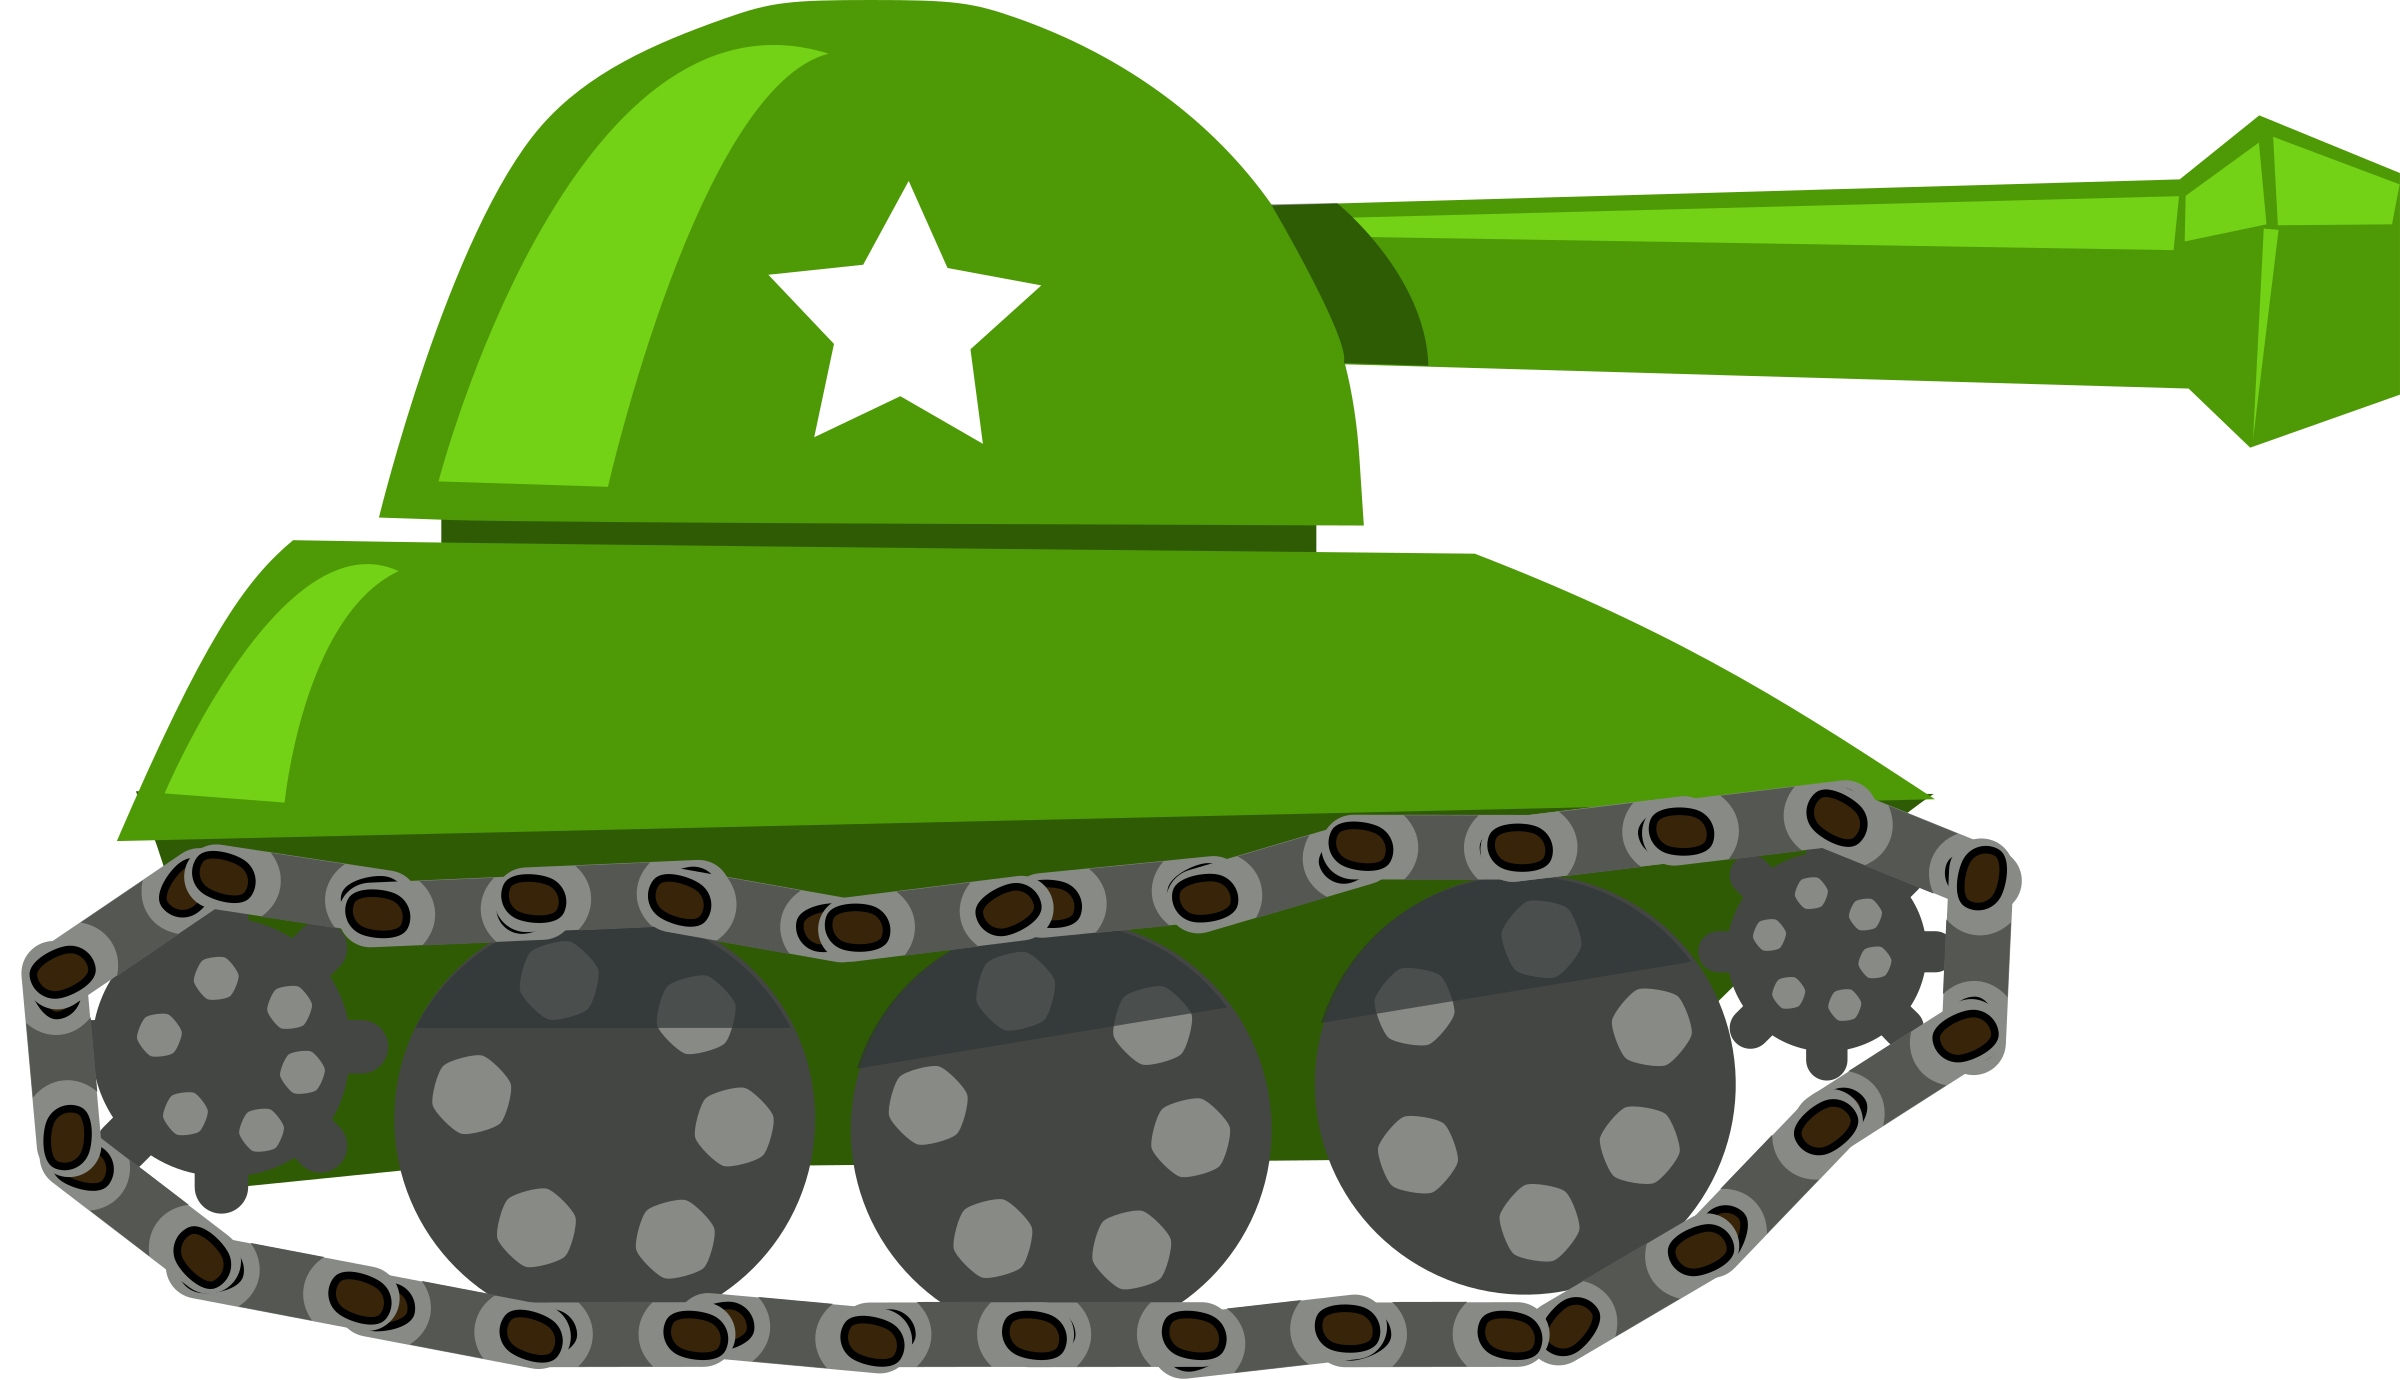 cartoon tank by rg1024